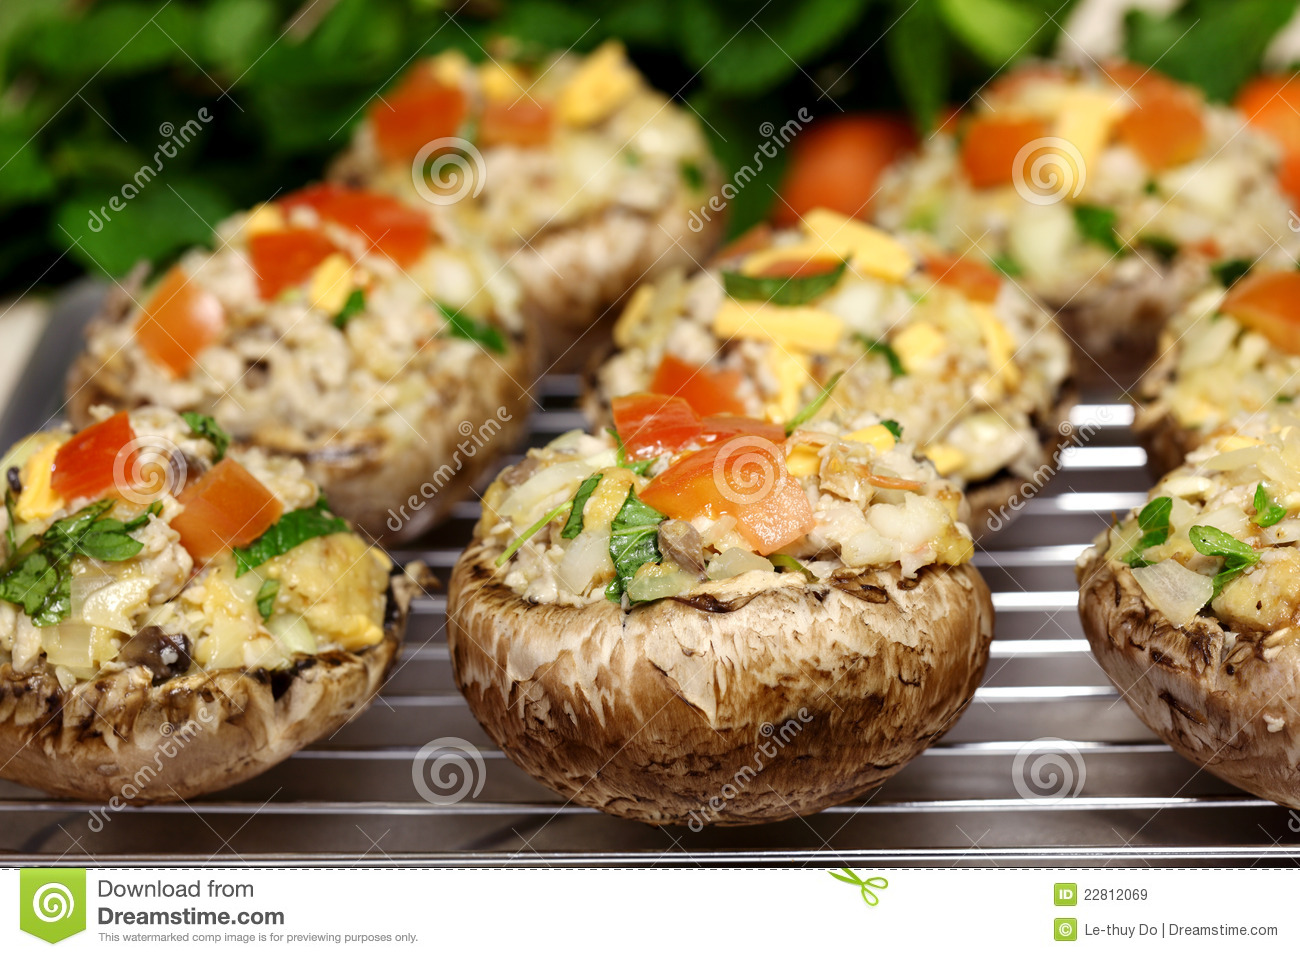 Stuffed Portabella Mushrooms Royalty Free Stock Images - Image ...